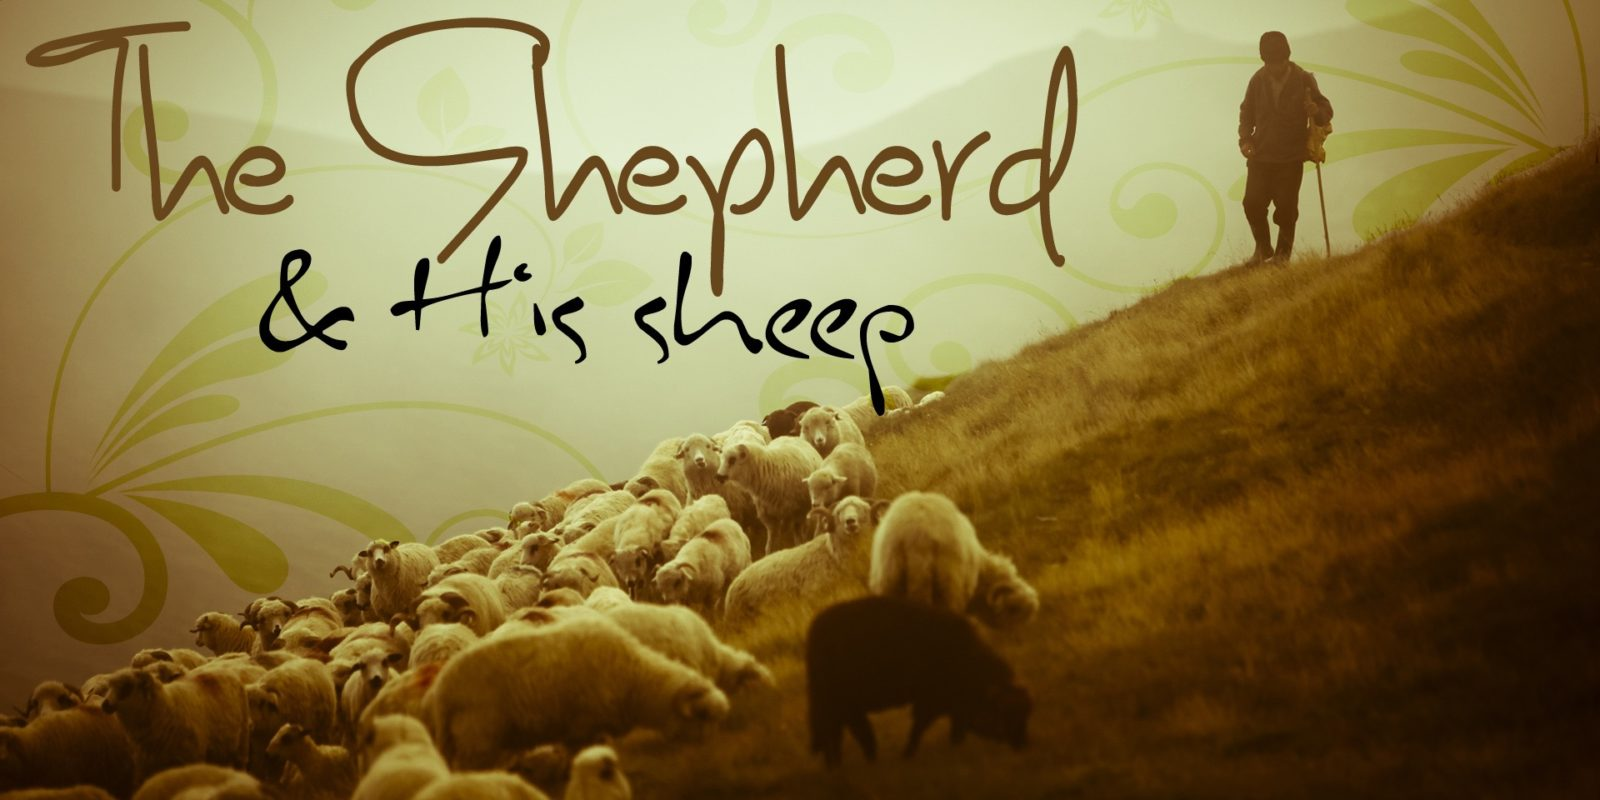 Current Series: The Shepherd and His Sheep